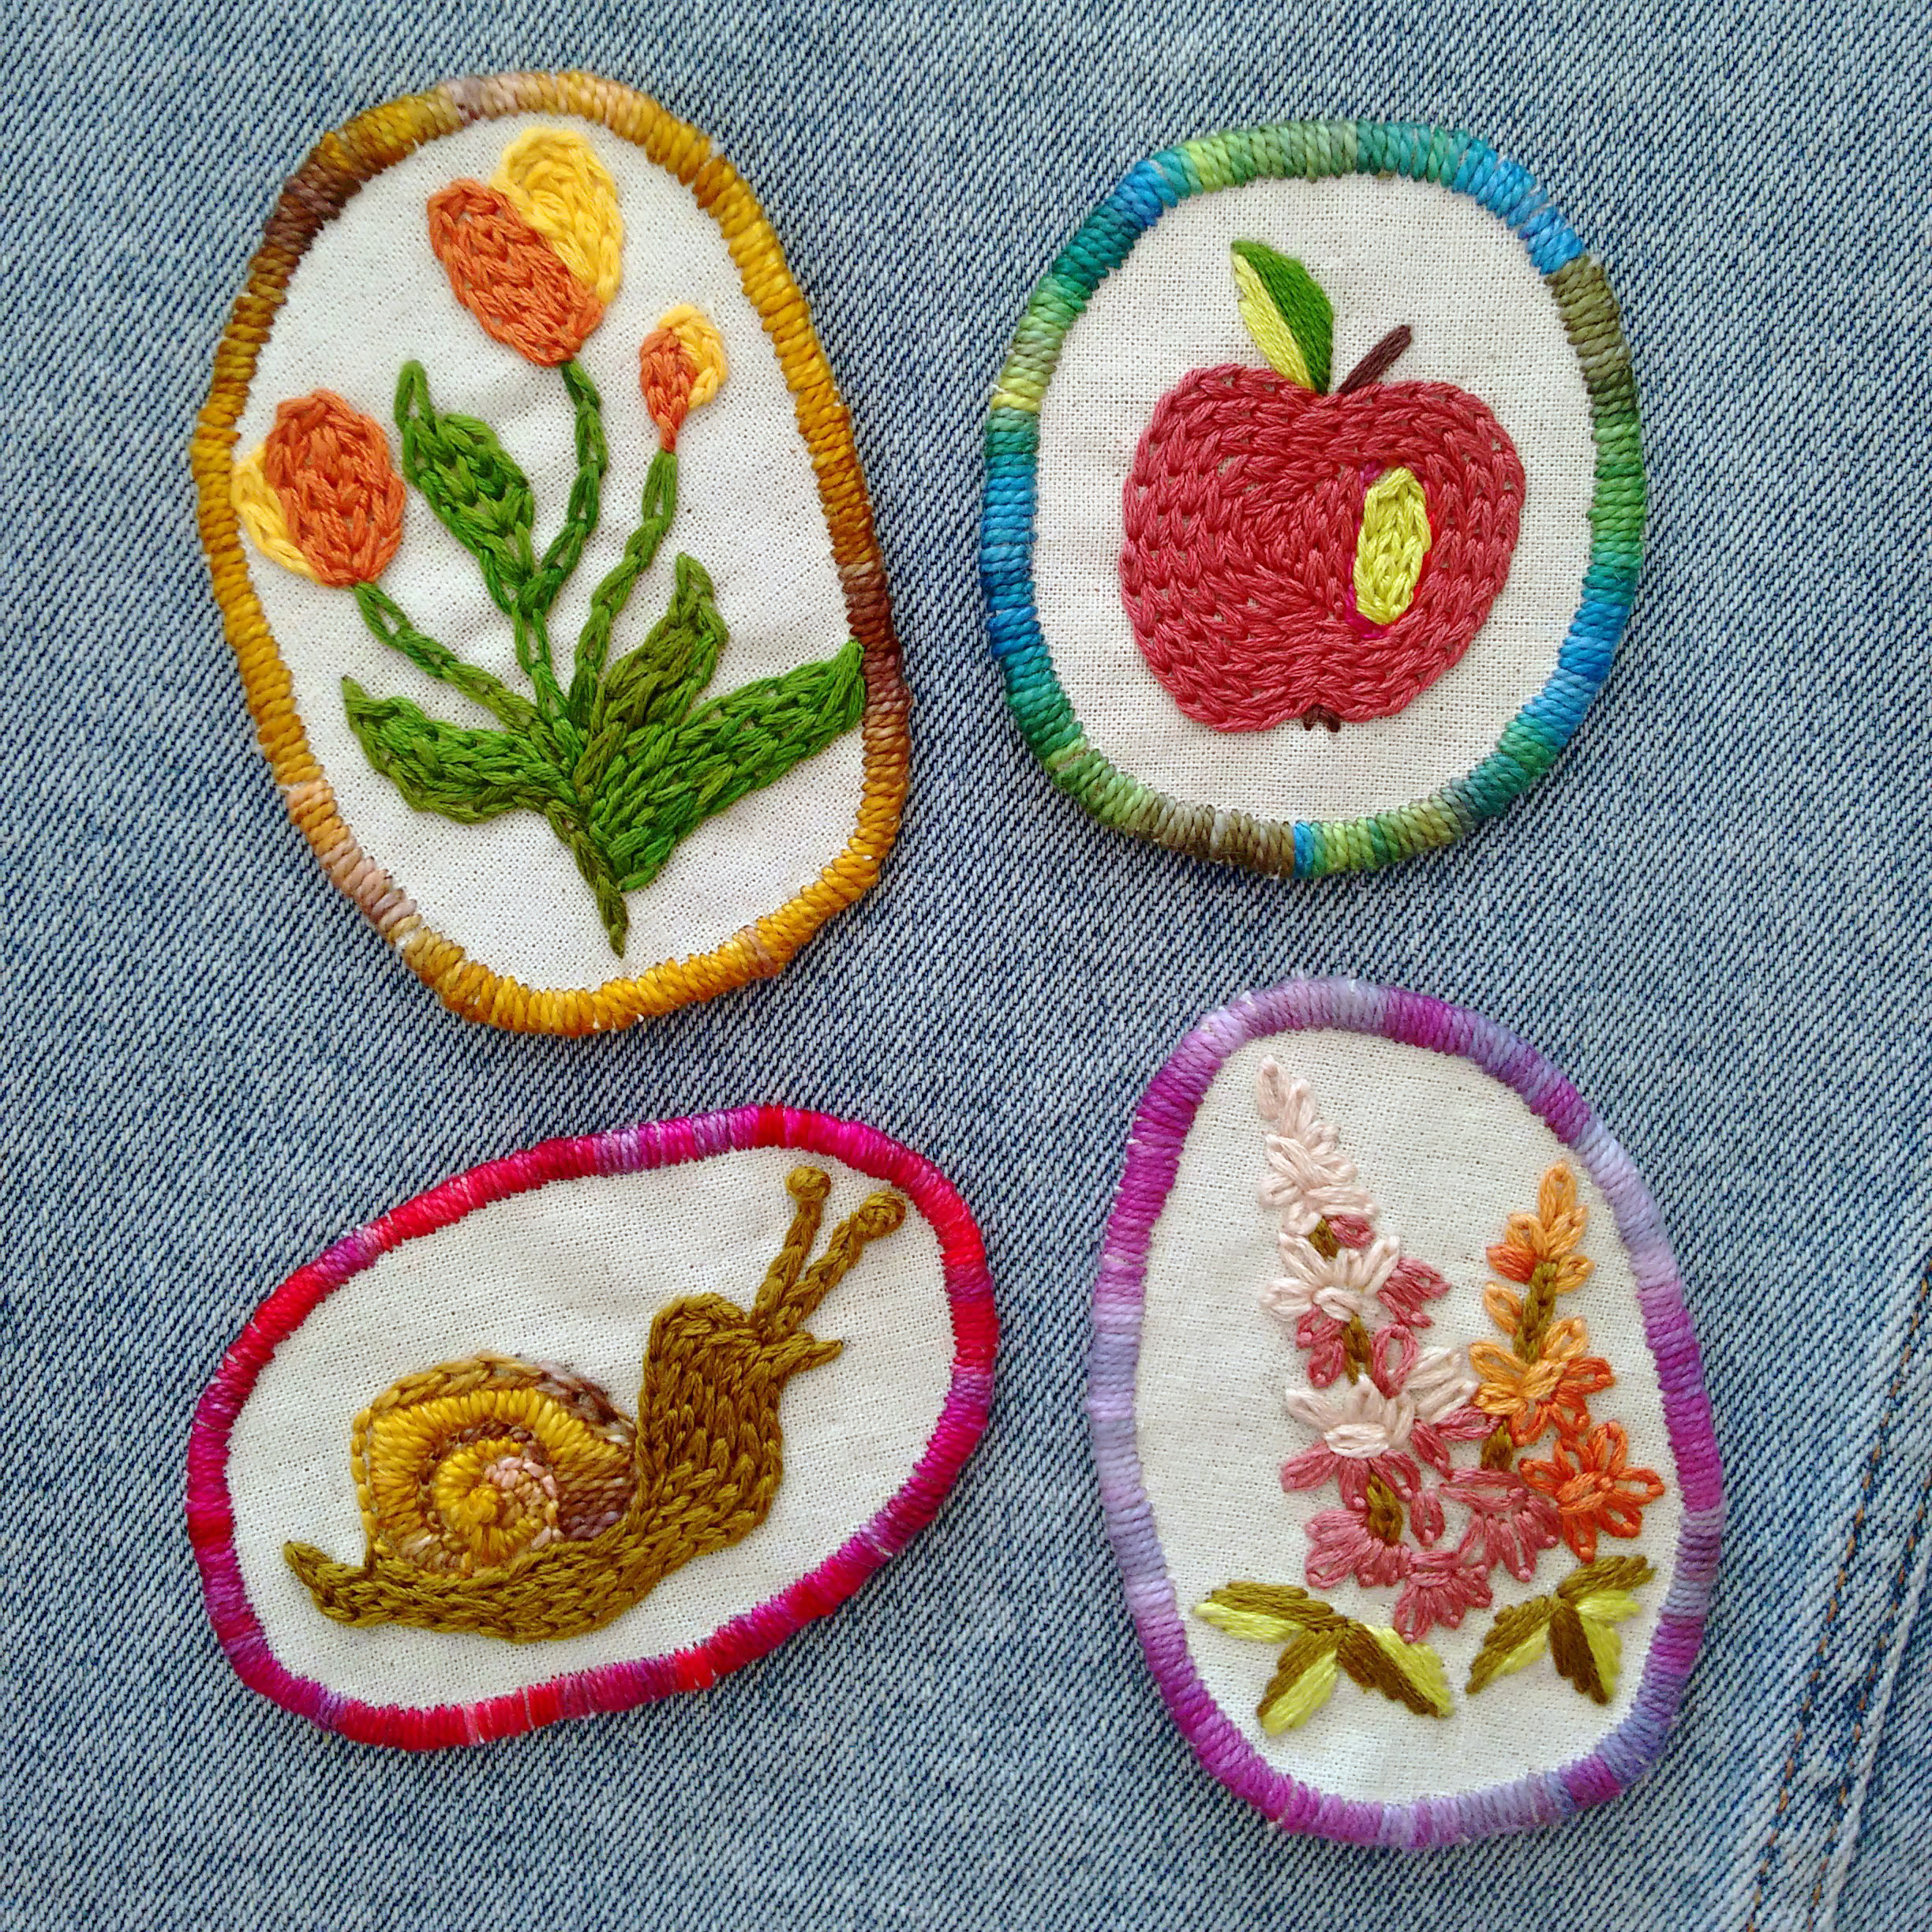 Four embroidered patches on a jean background